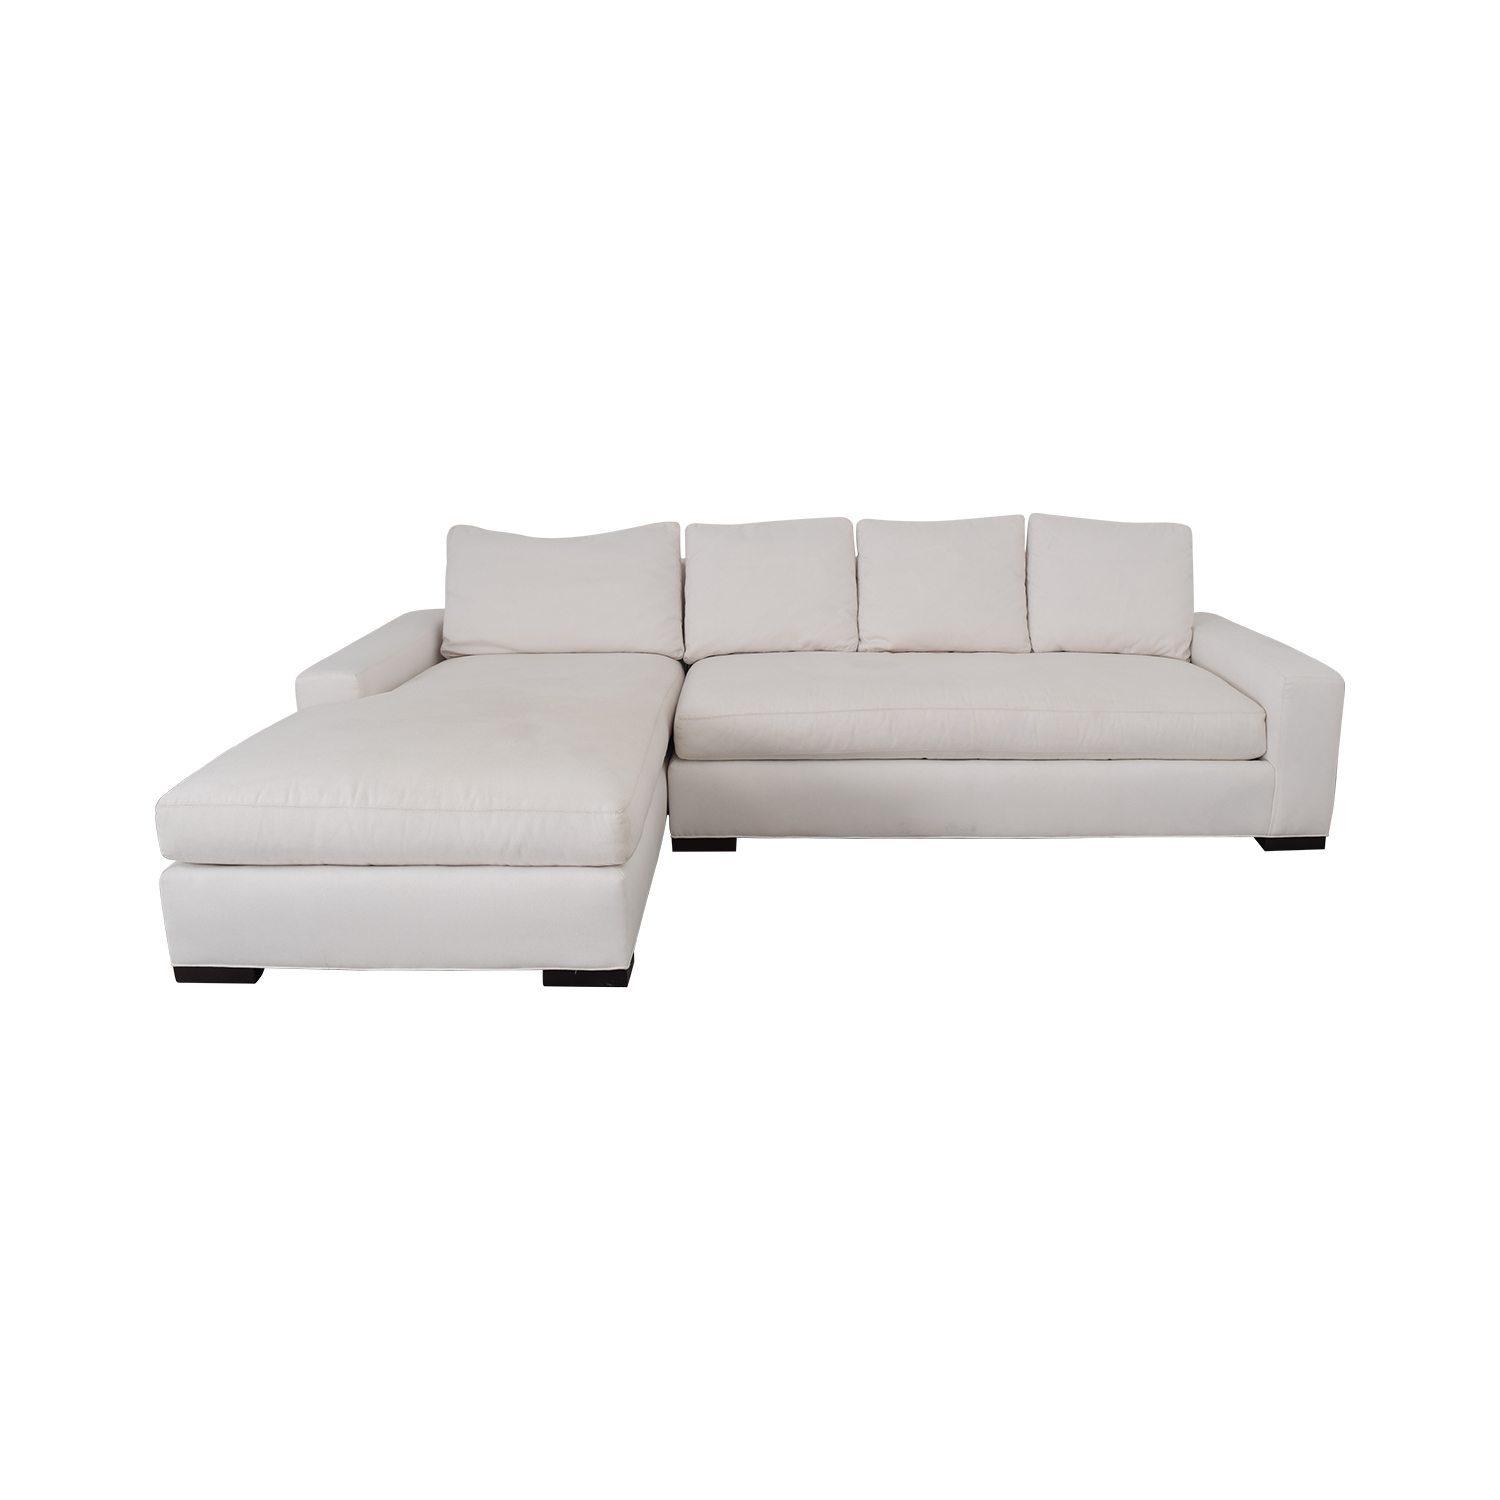 Williams Sonoma Williams Sonoma Sectional Sofa with Chaise